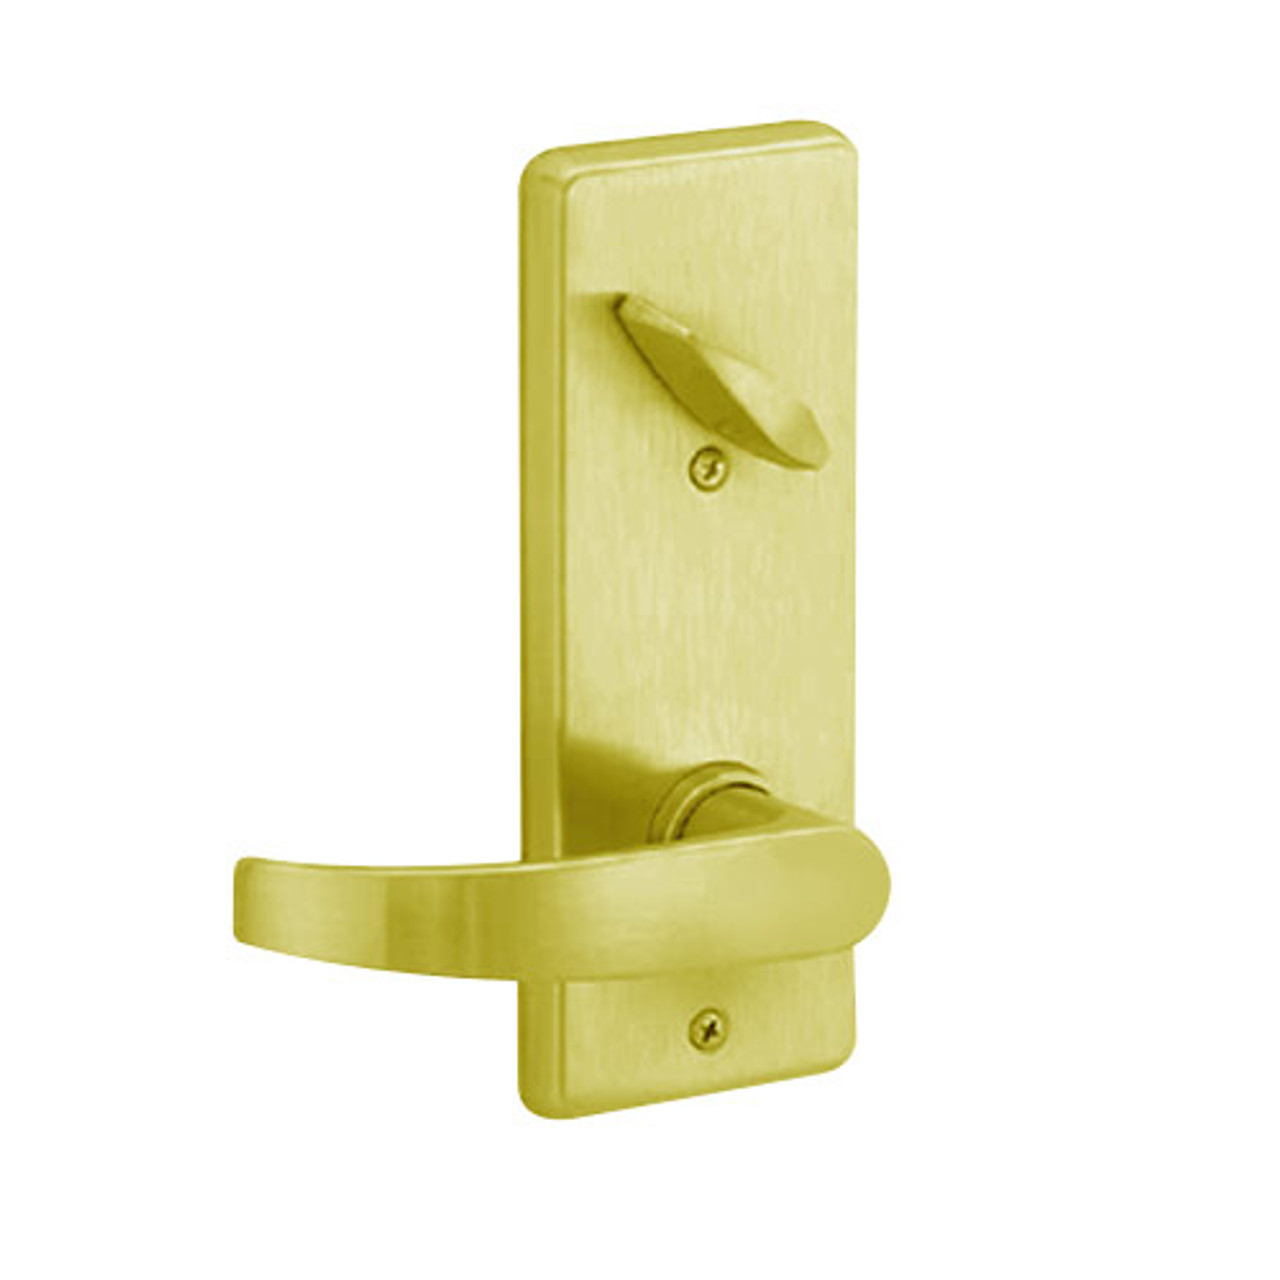 S290-NEP-605 Schlage S290 Neptune Style Interconnected Lock in Bright Brass